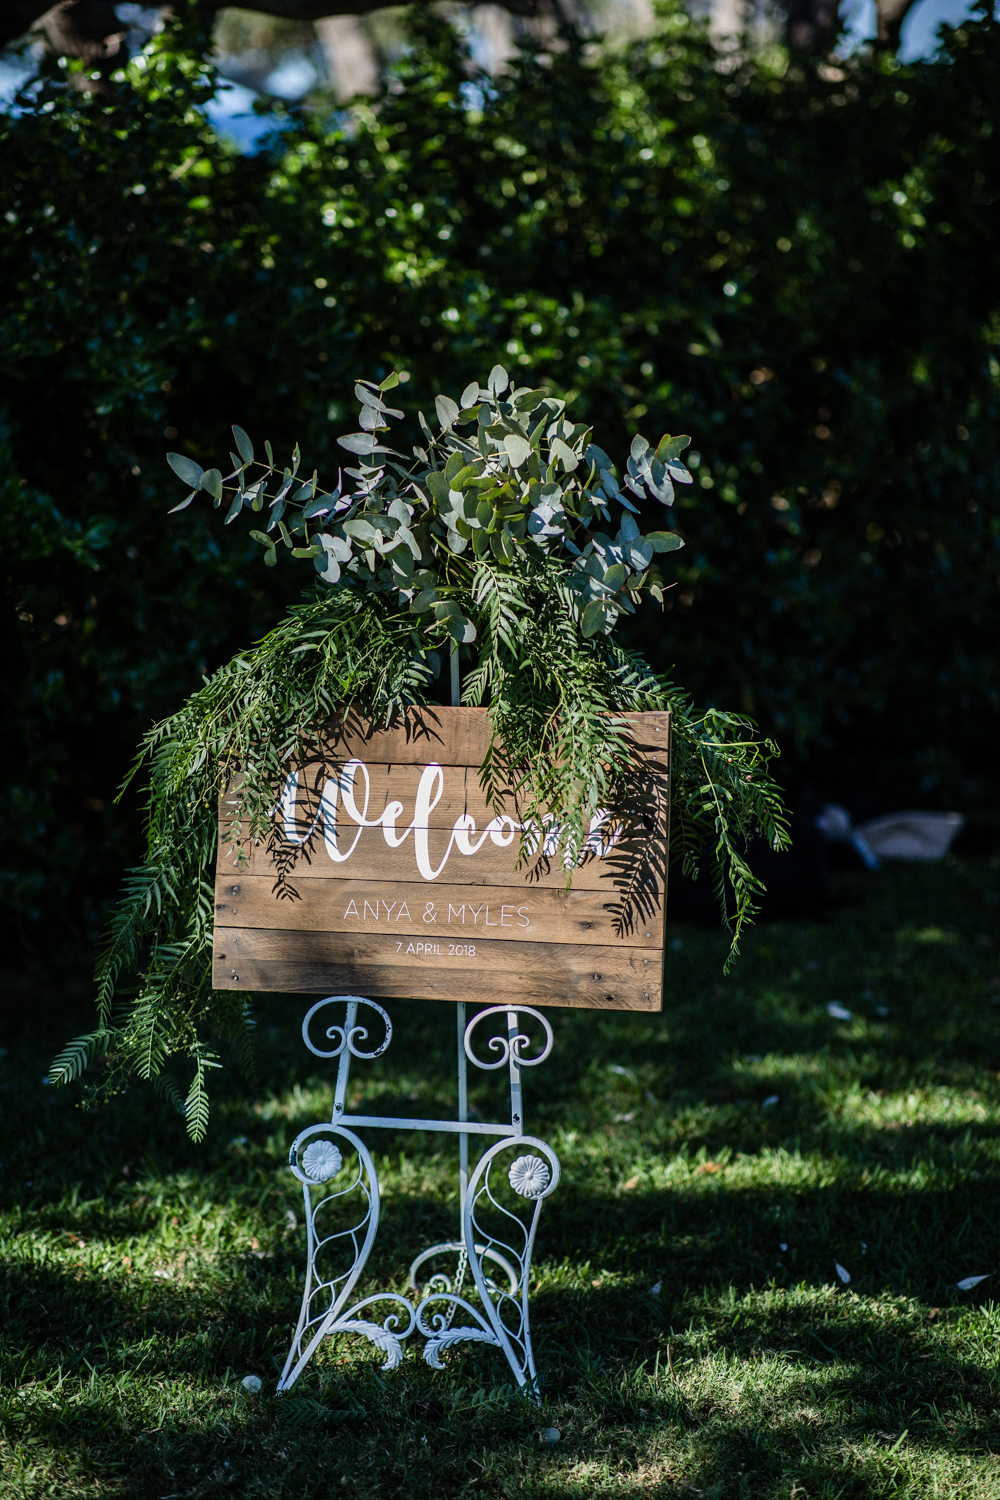 WEDDING SIGN BY SYDNEY WEDDING PLANNER